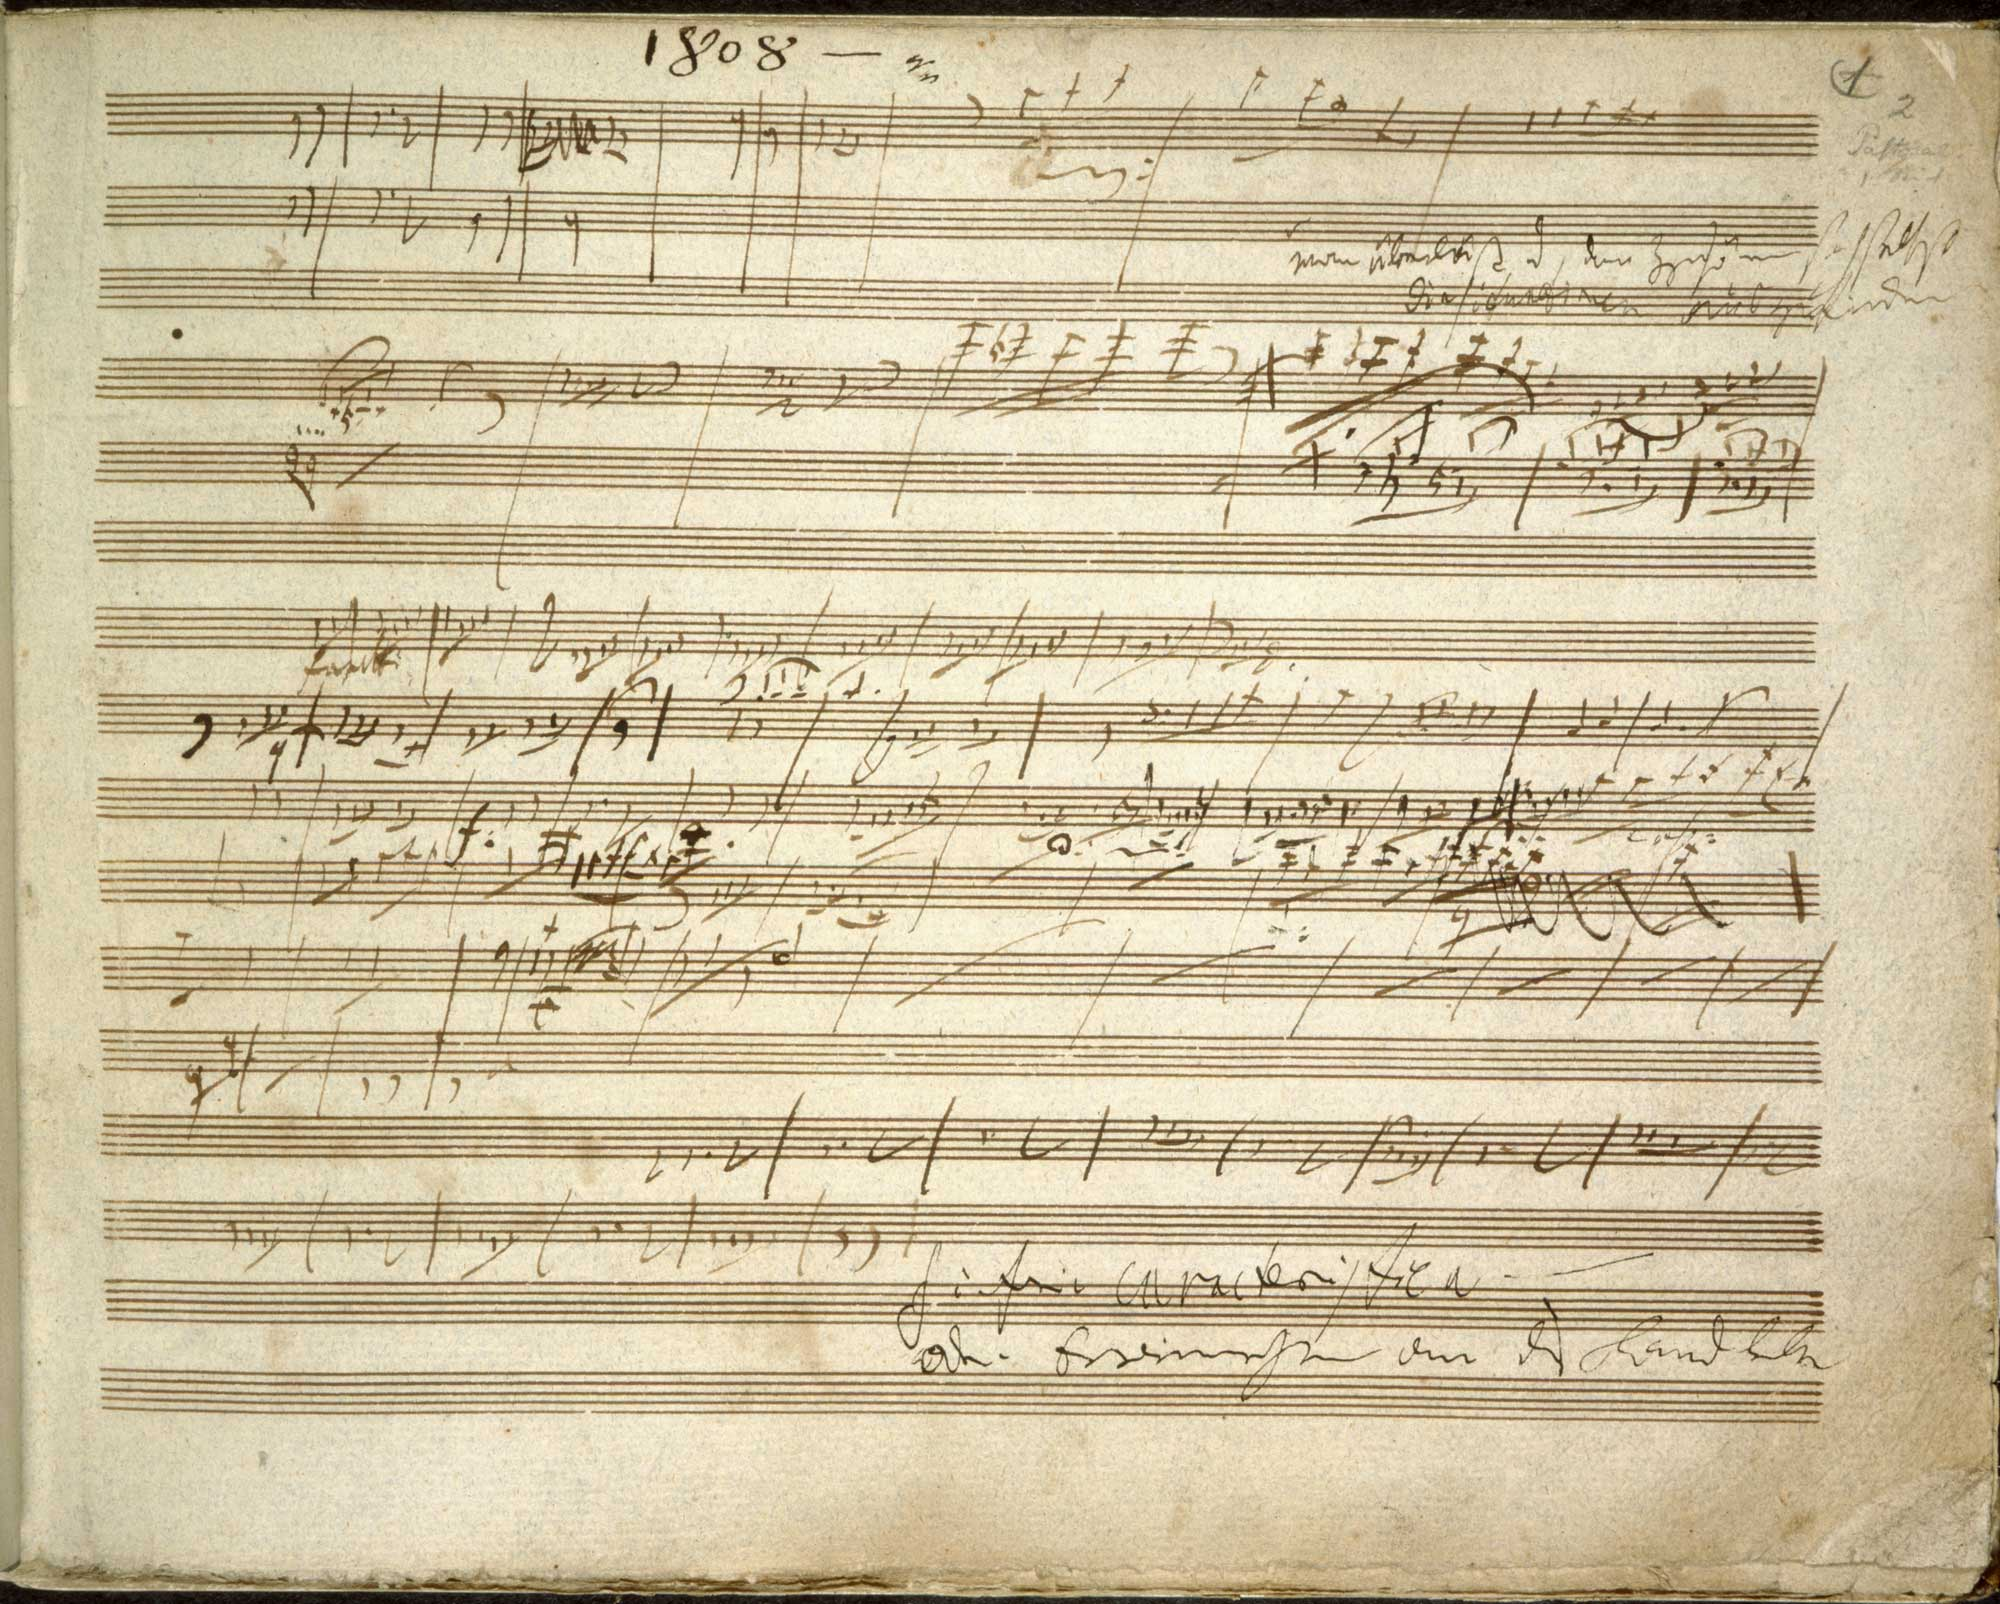 Beethoven's sketches